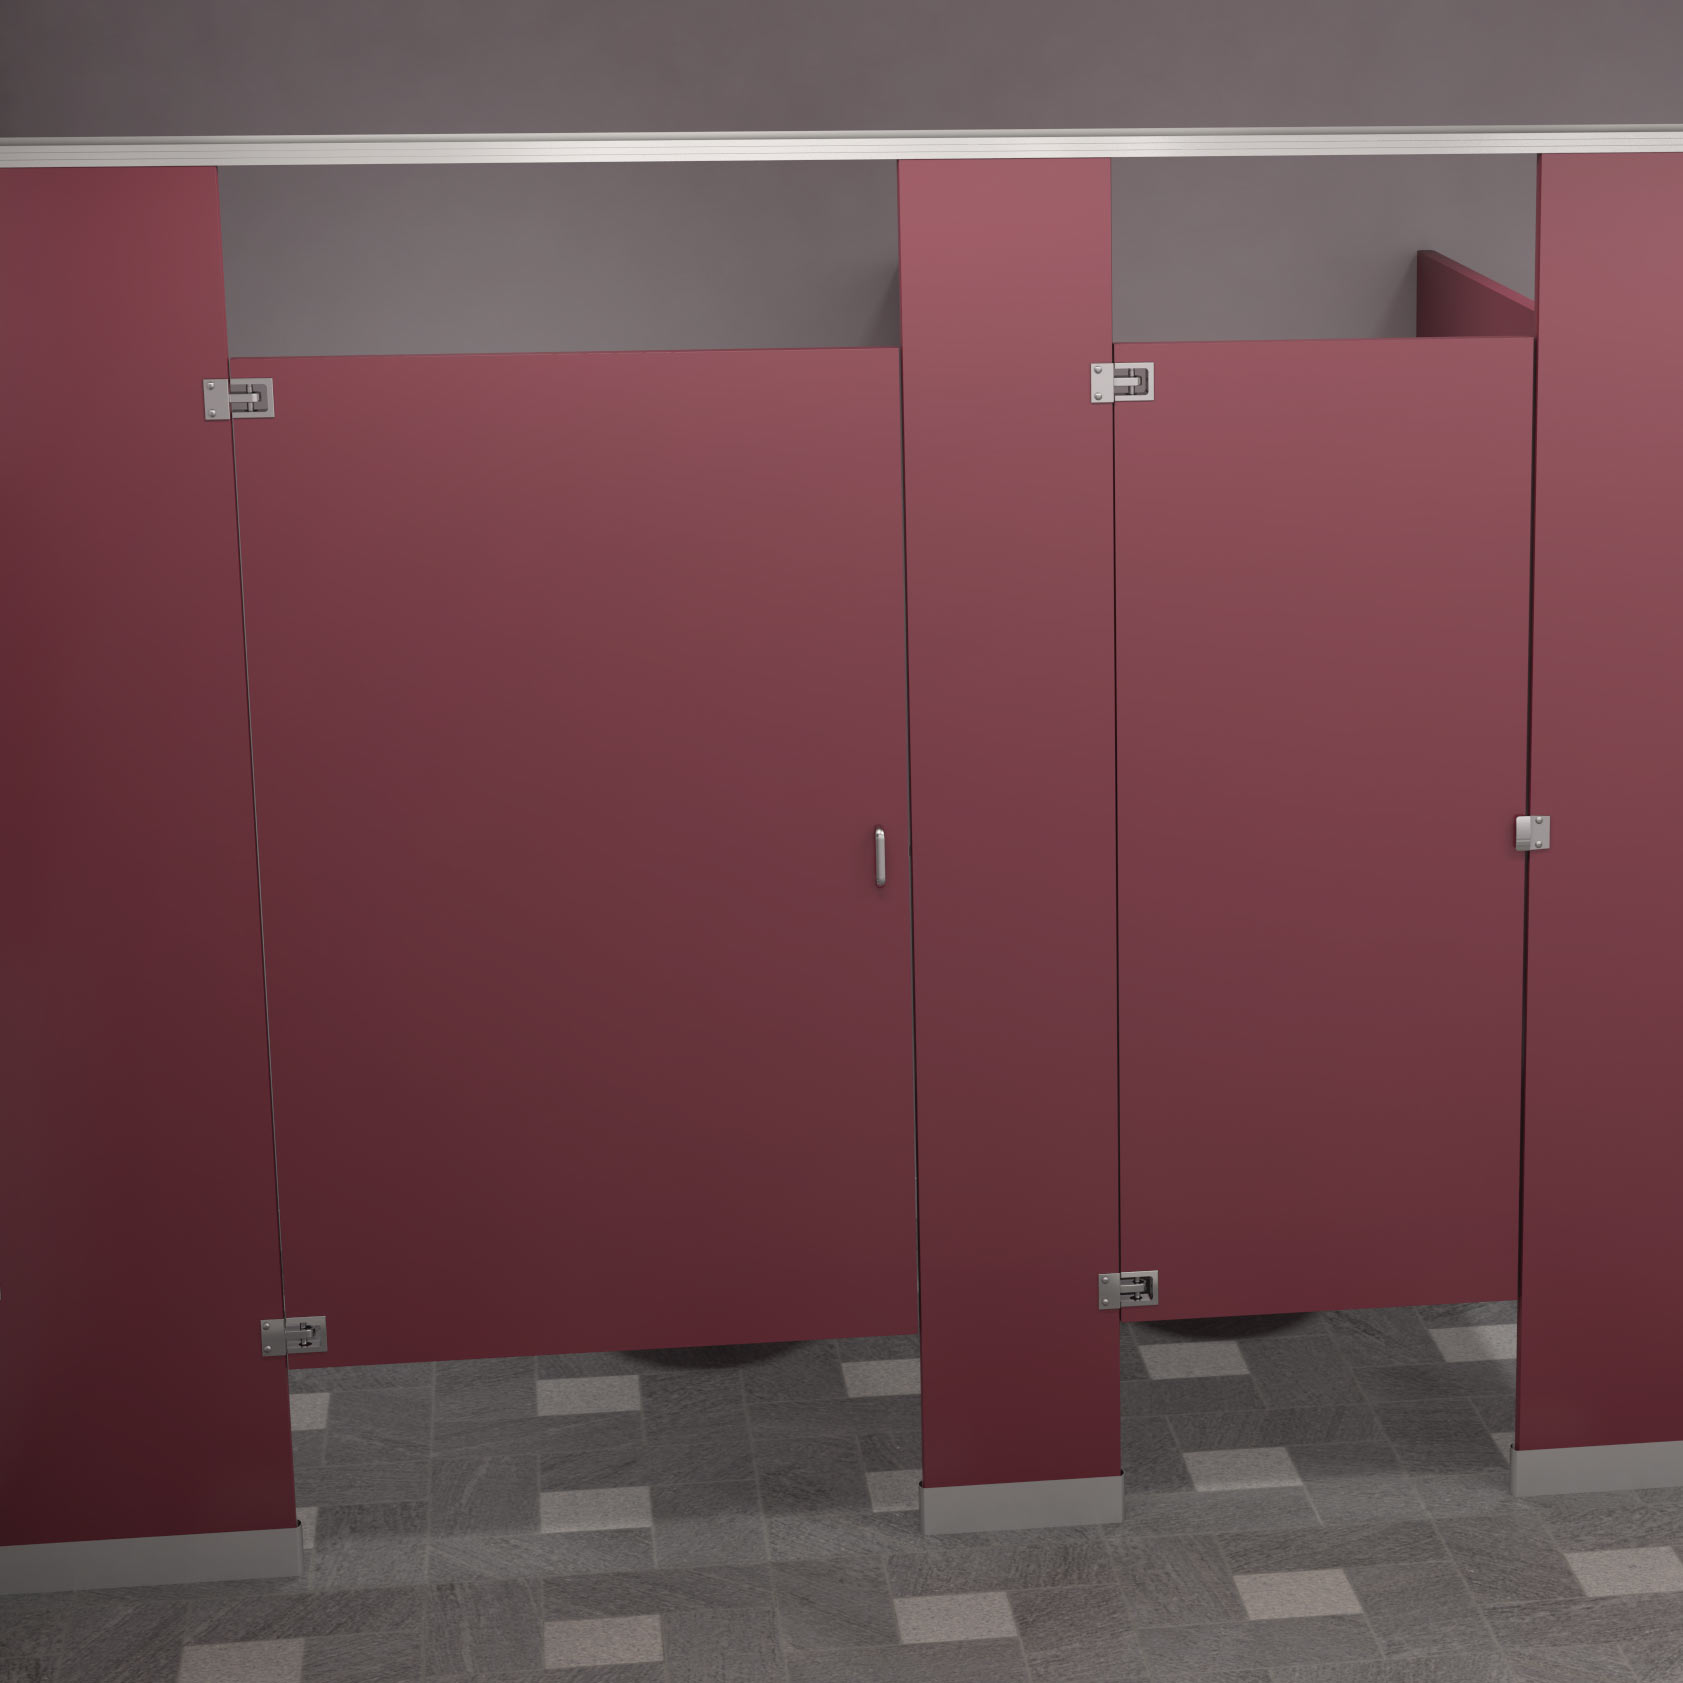 Stainless Steel Bathroom Stalls Property: Privacy Compartment Materials For Public Restrooms